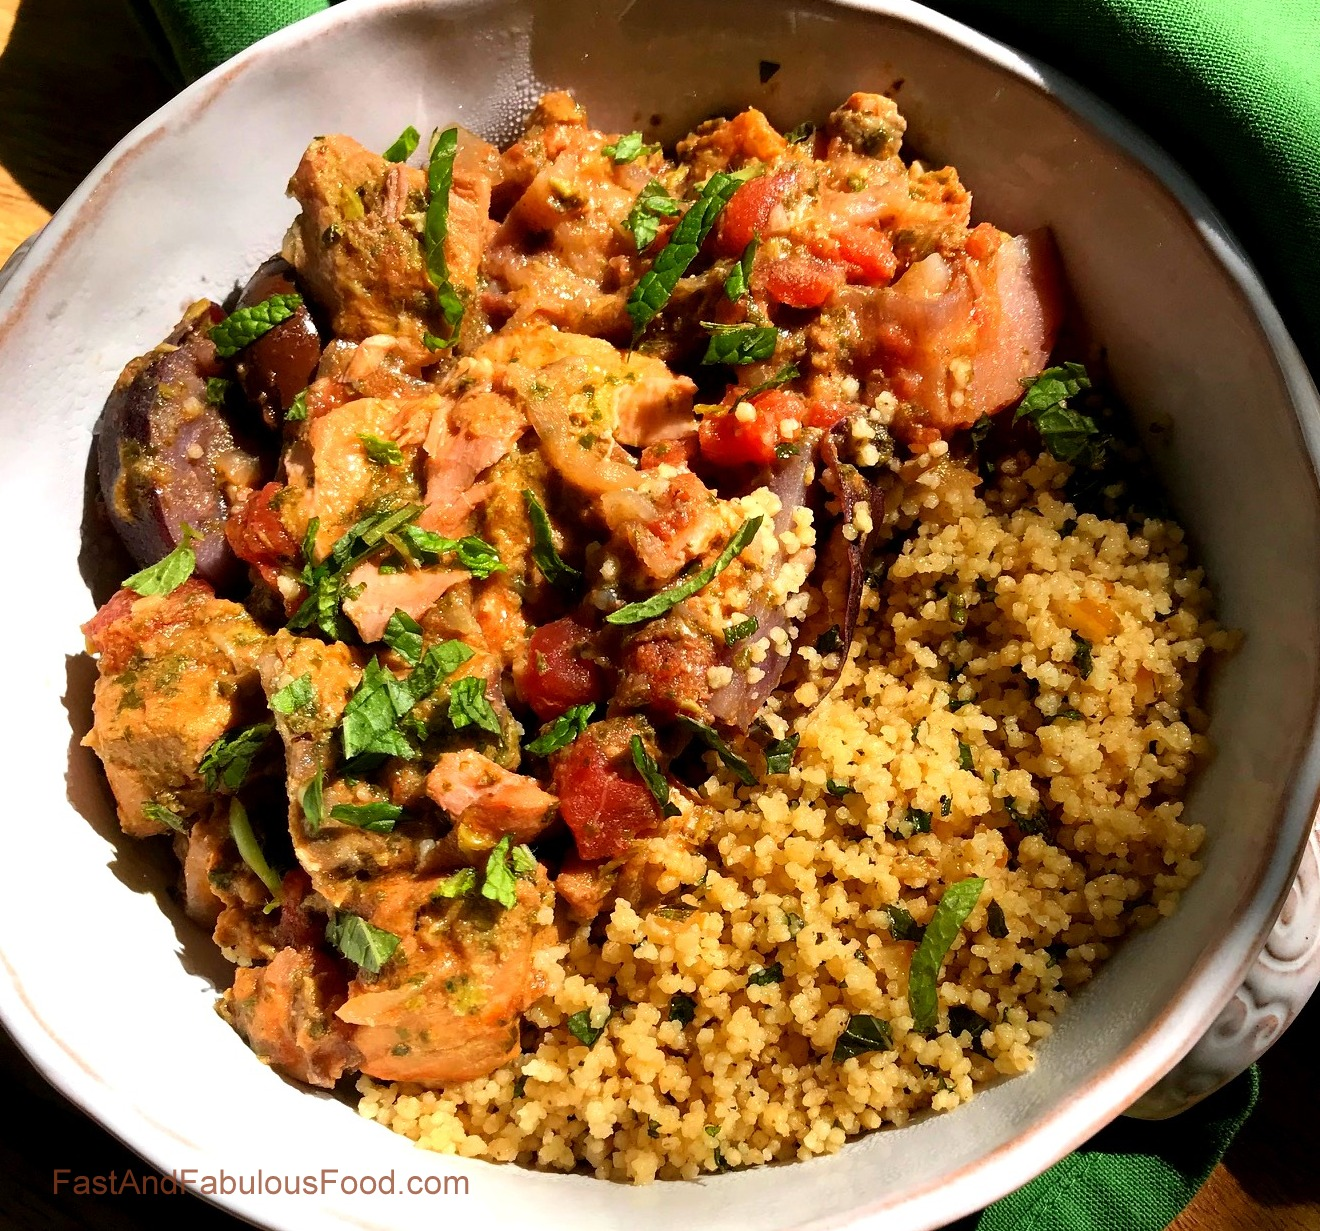 SALMON TAGINE with COUSCOUS